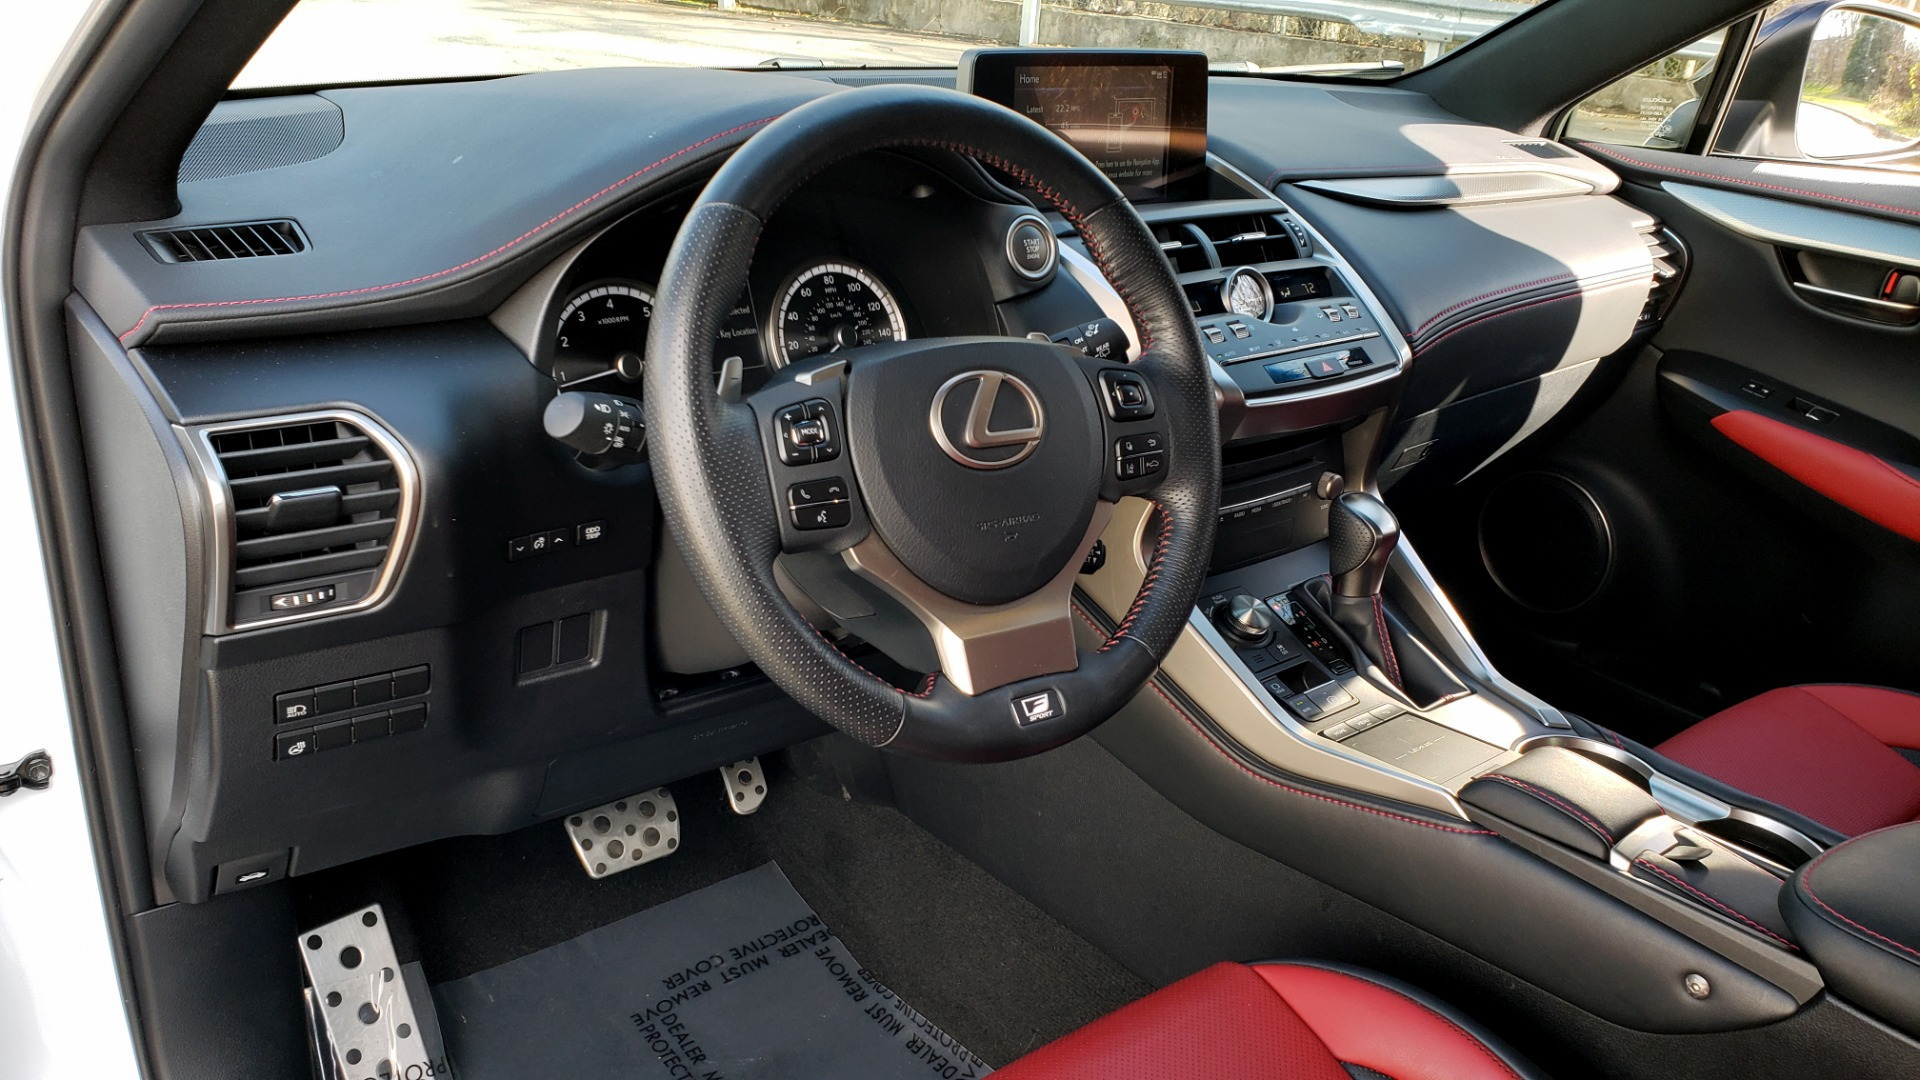 Used 2019 Lexus NX 300 F-SPORT / 2.0L TURBO / LEATHER / 18IN WHEELS / REARVIEW for sale Sold at Formula Imports in Charlotte NC 28227 39